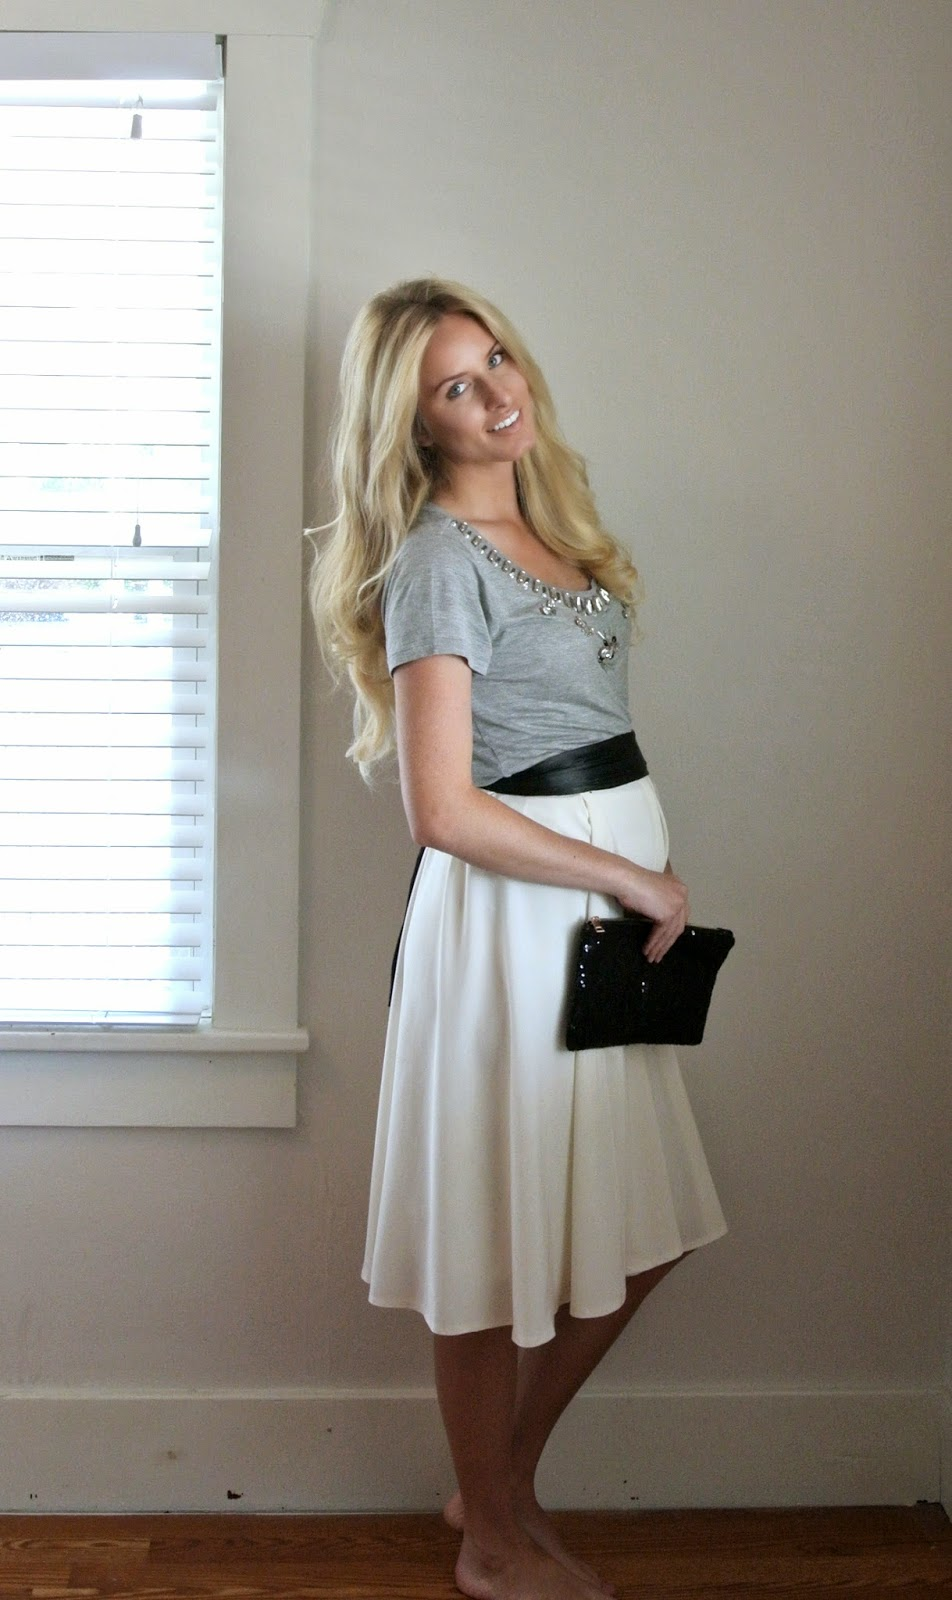 Box pleat skirt tutorial, includes step by step instructions